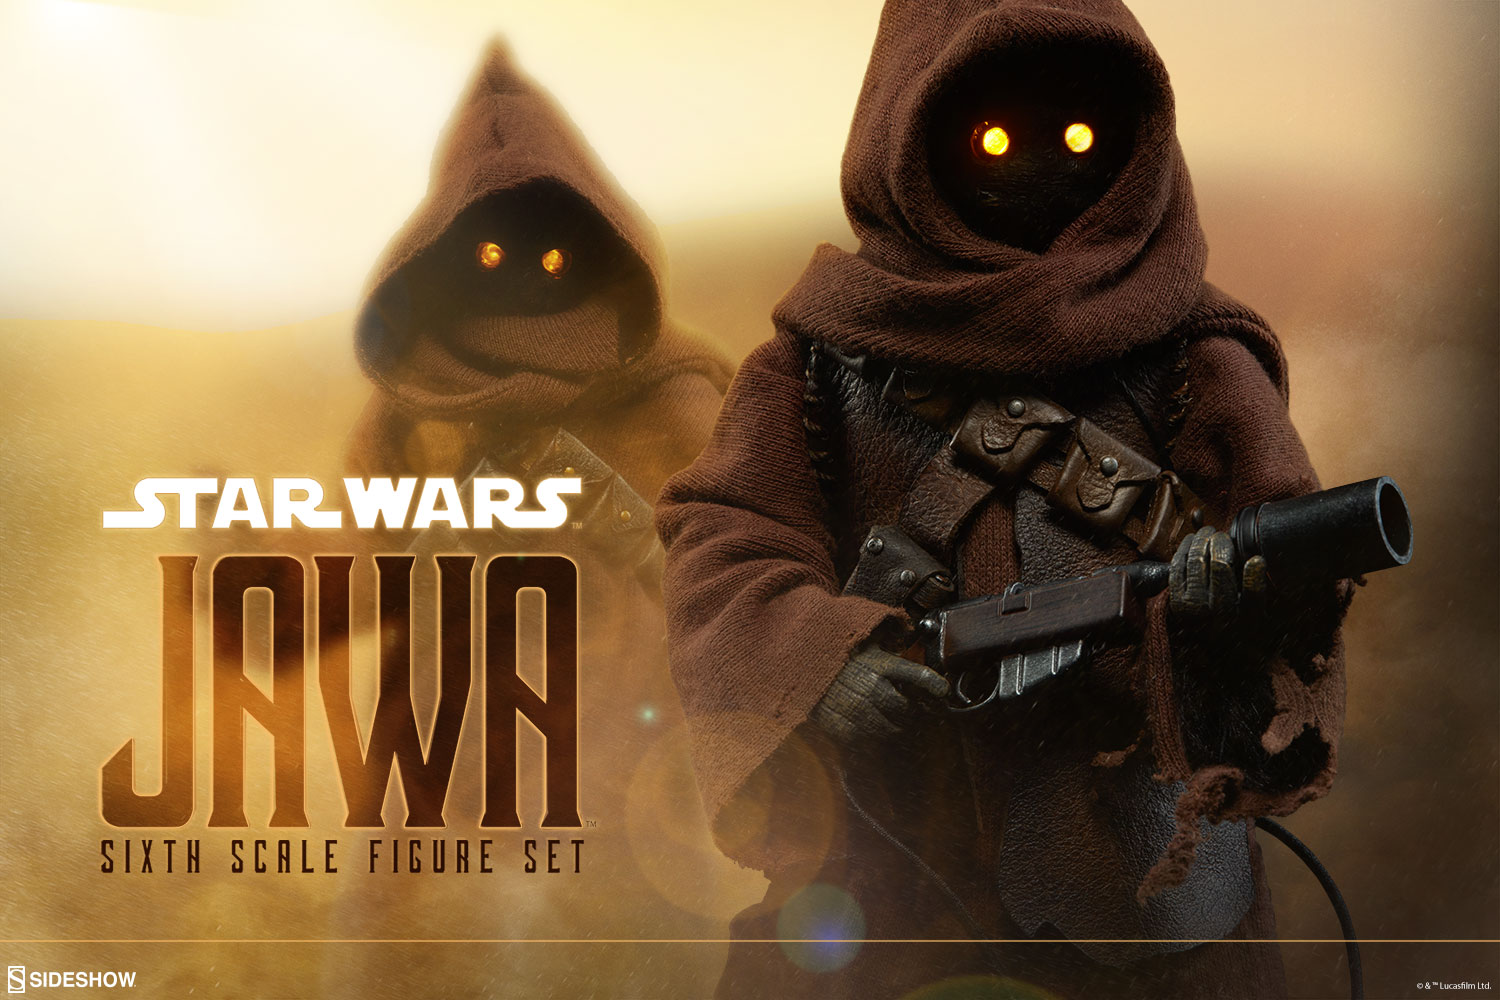 The Flash Iphone Wallpaper Star Wars Jawa Sixth Scale Figure Set By Sideshow